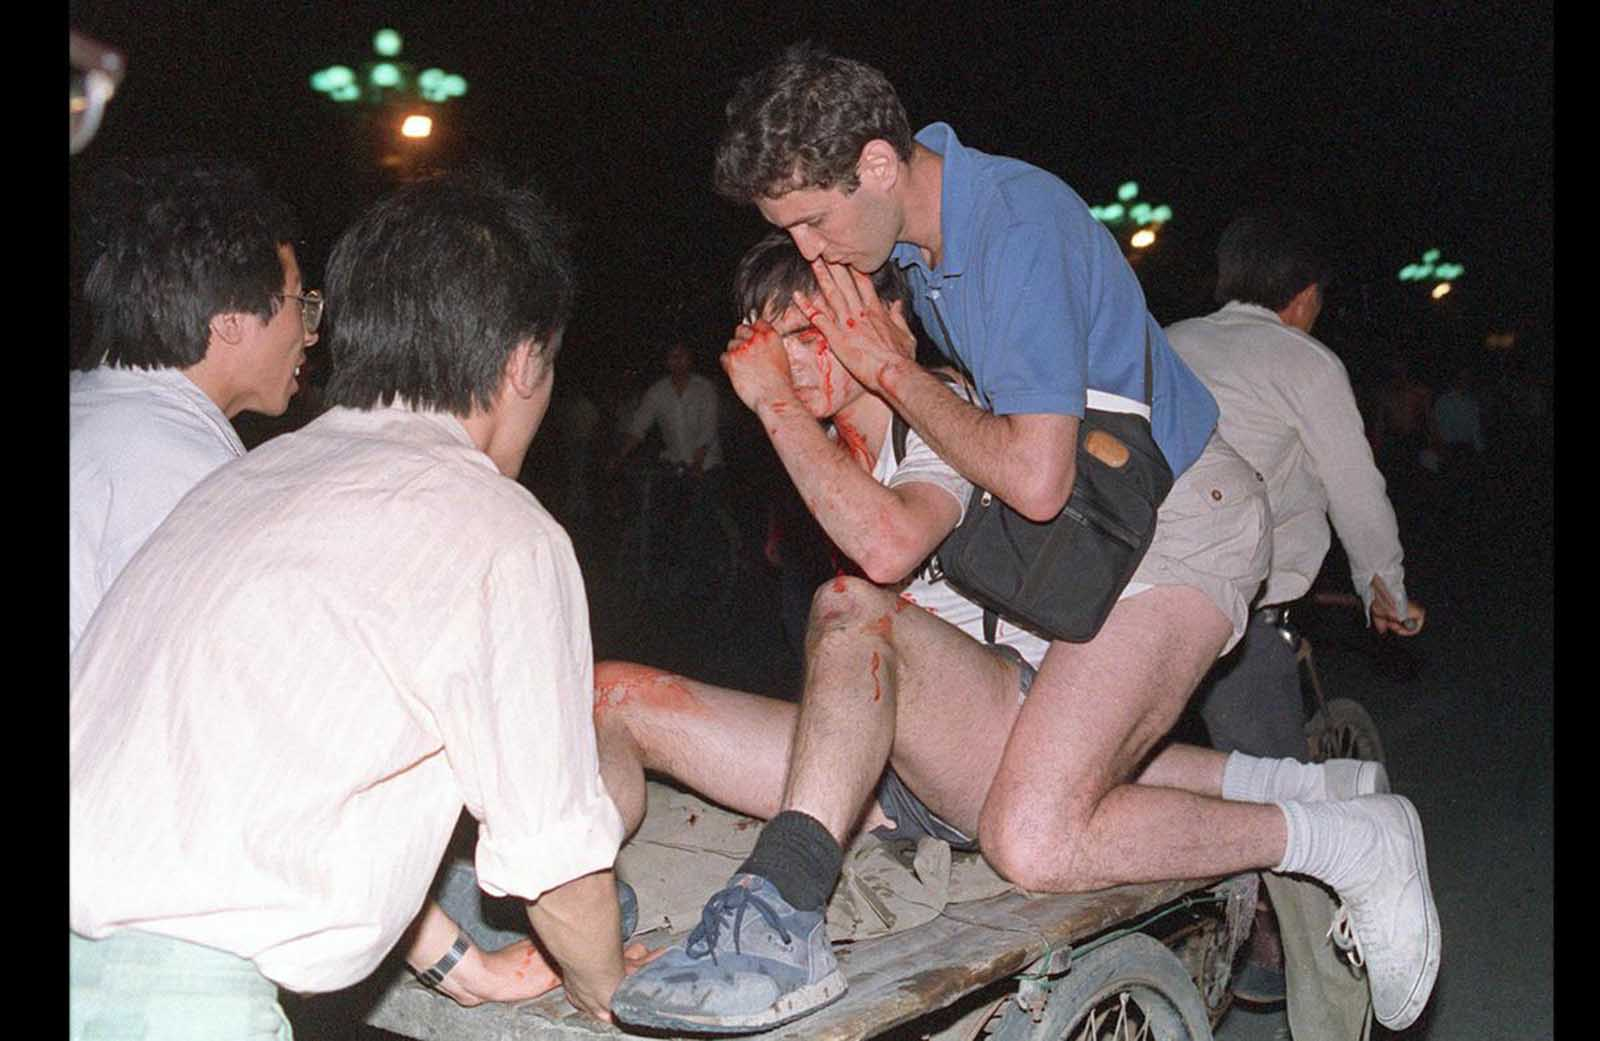 Taken care by others, an unidentified foreign journalist (2nd from right) is carried away from the clash between the army and students near Tiananmen Square, on June 4, 1989.